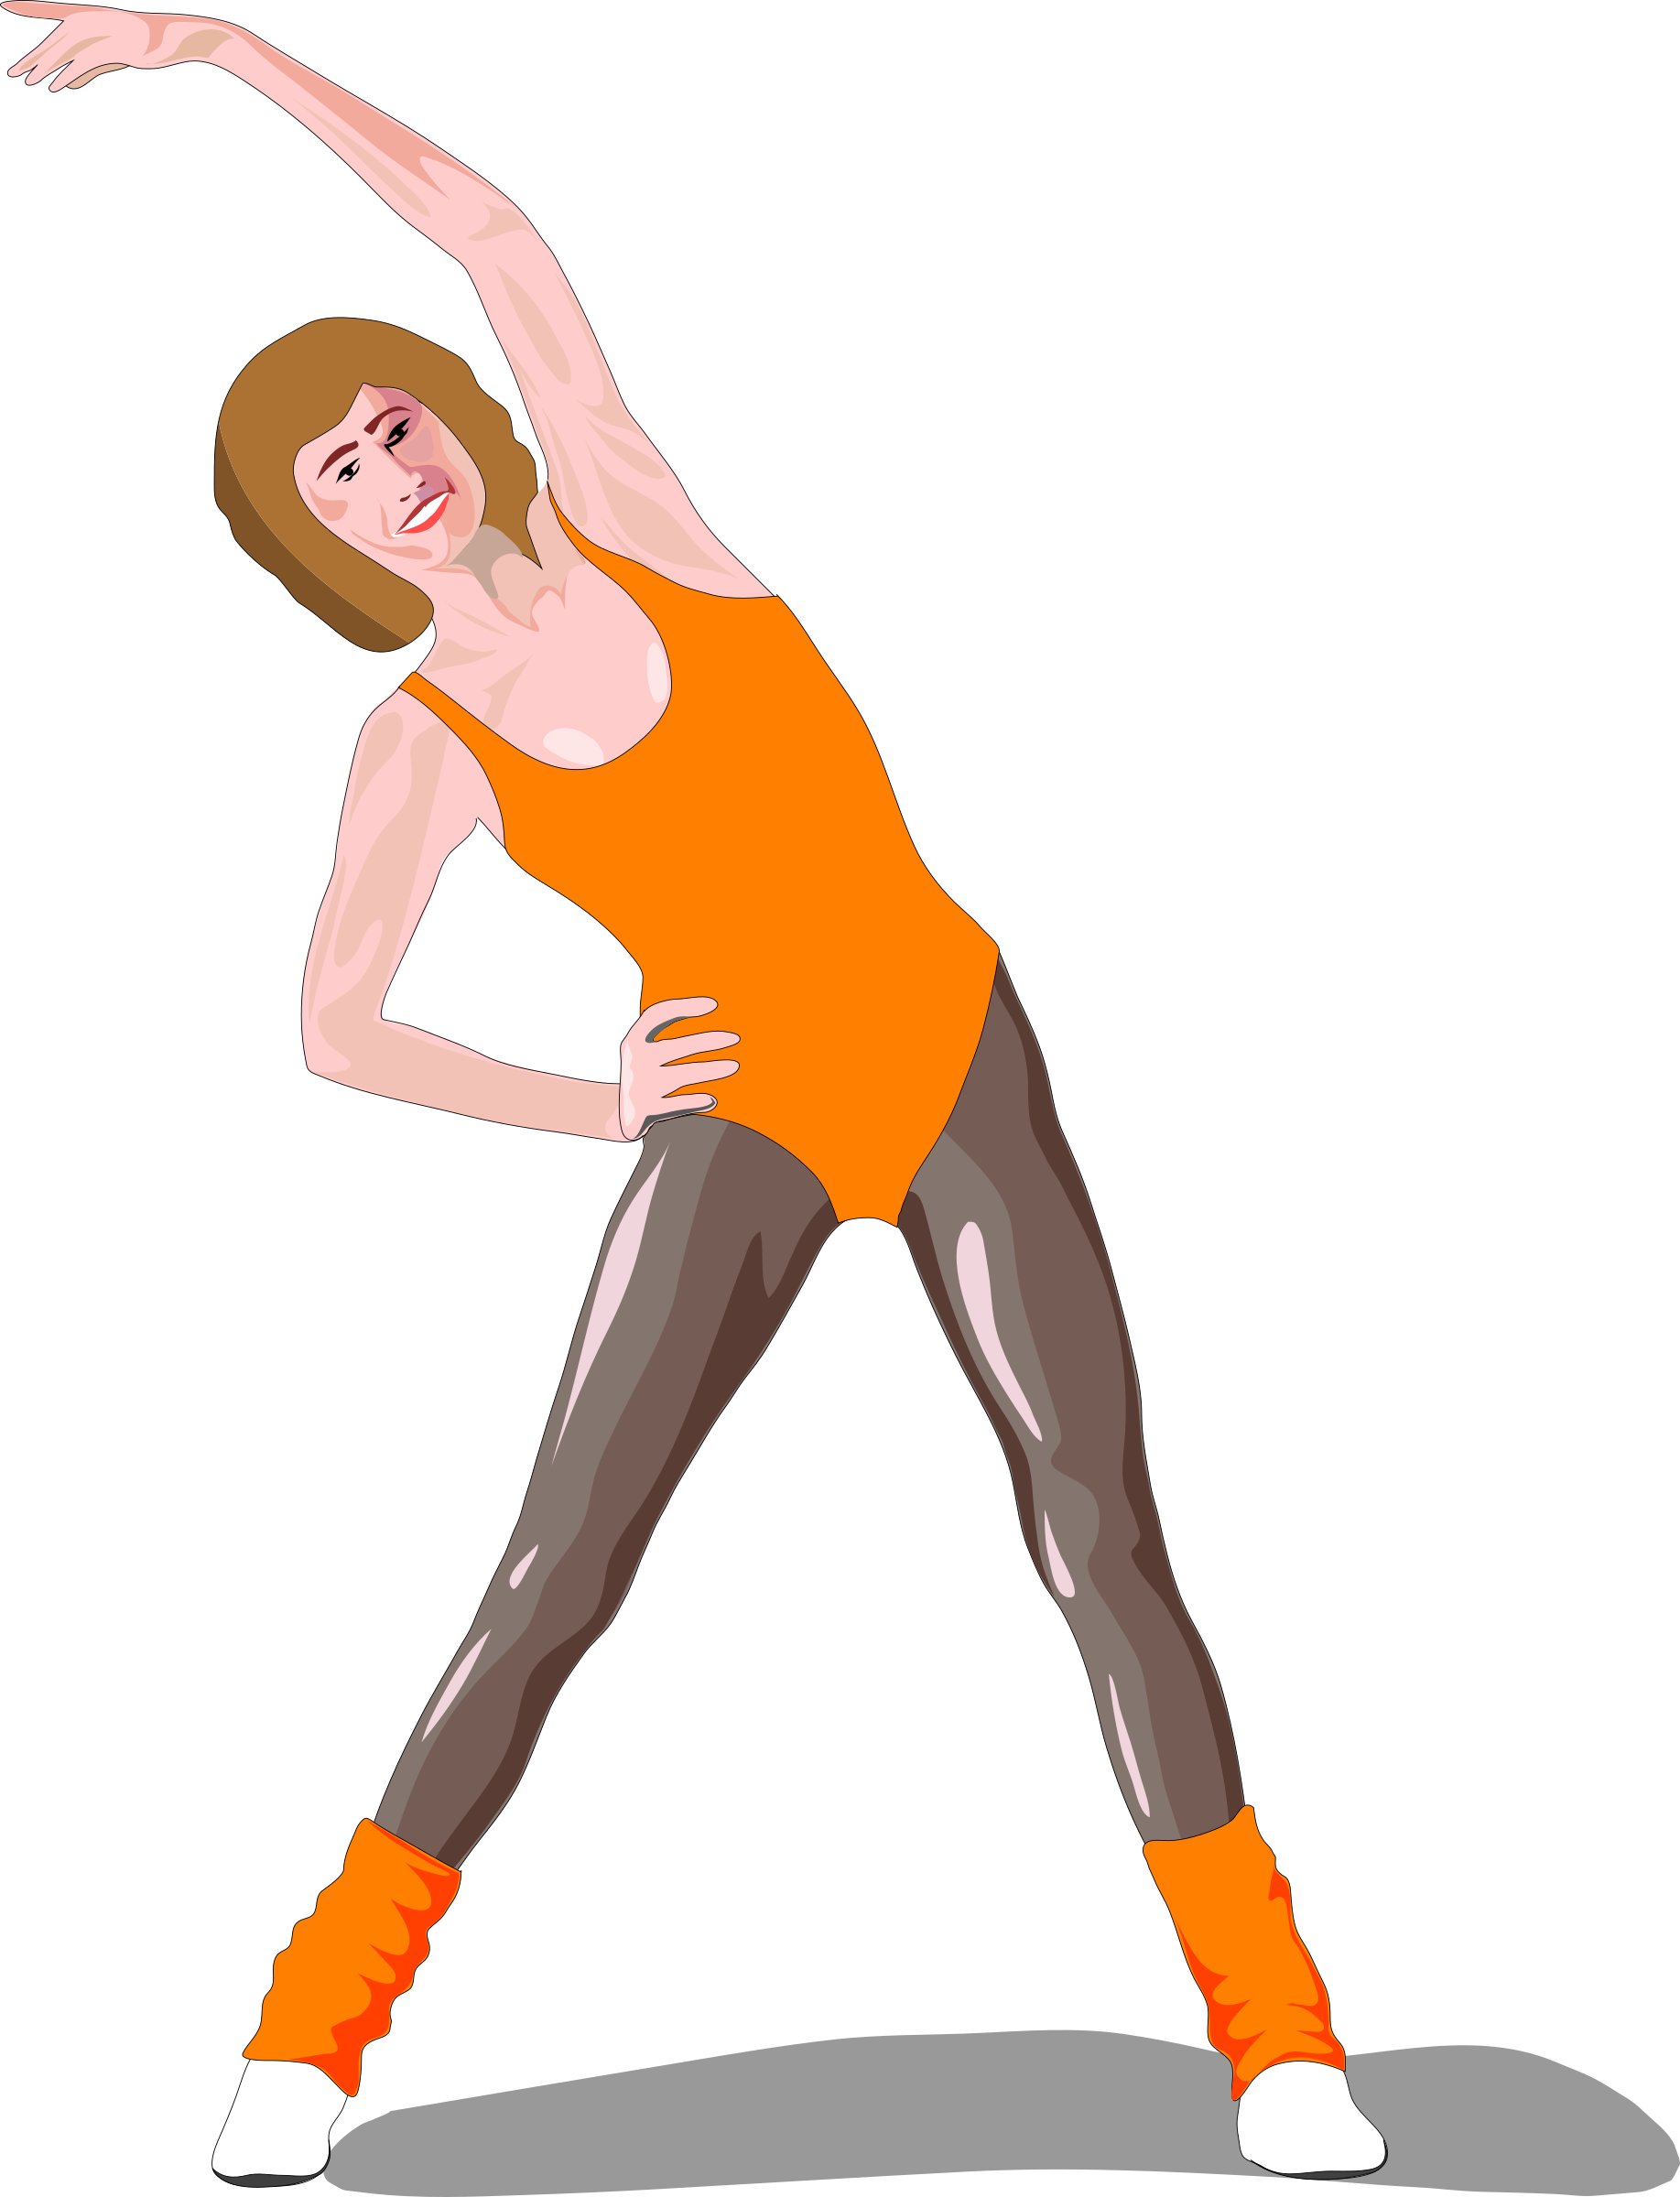 Fitness clipart male. Transparent free for